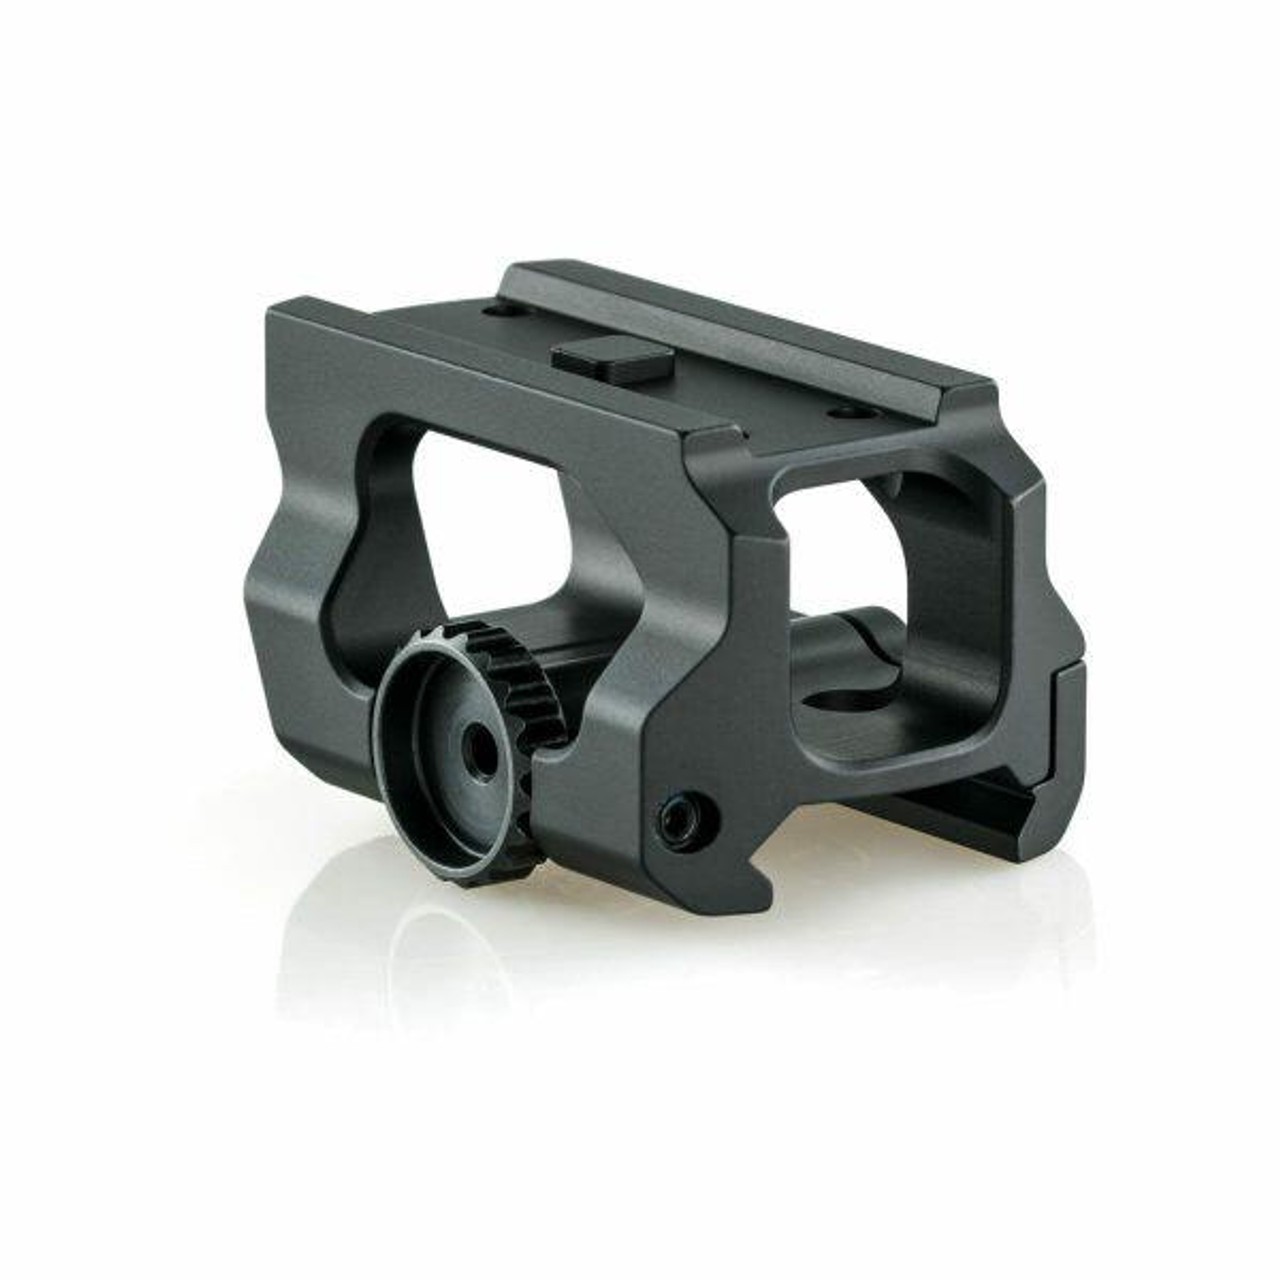 Scalarworks LEAP/Micro Mount - Aimpoint Micro (Absolute 36mm)